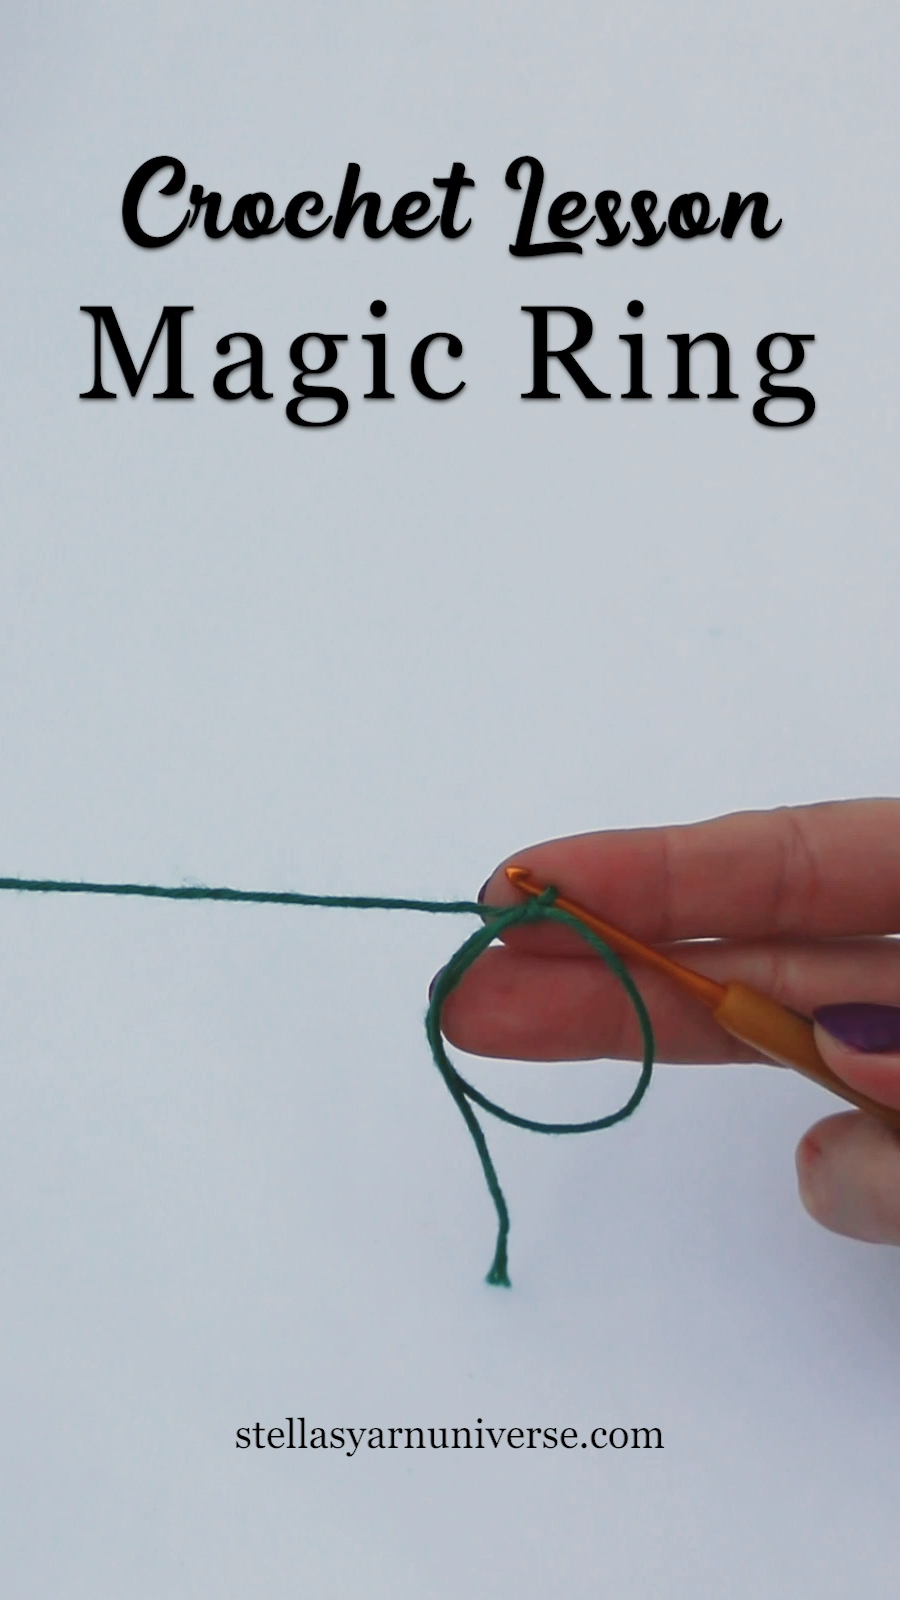 How to make a magic ring in crochet A magic ring is a great way to start a closed crochet project that requires working in a round, like for example cuddly toys. #crochetstitchespatterns